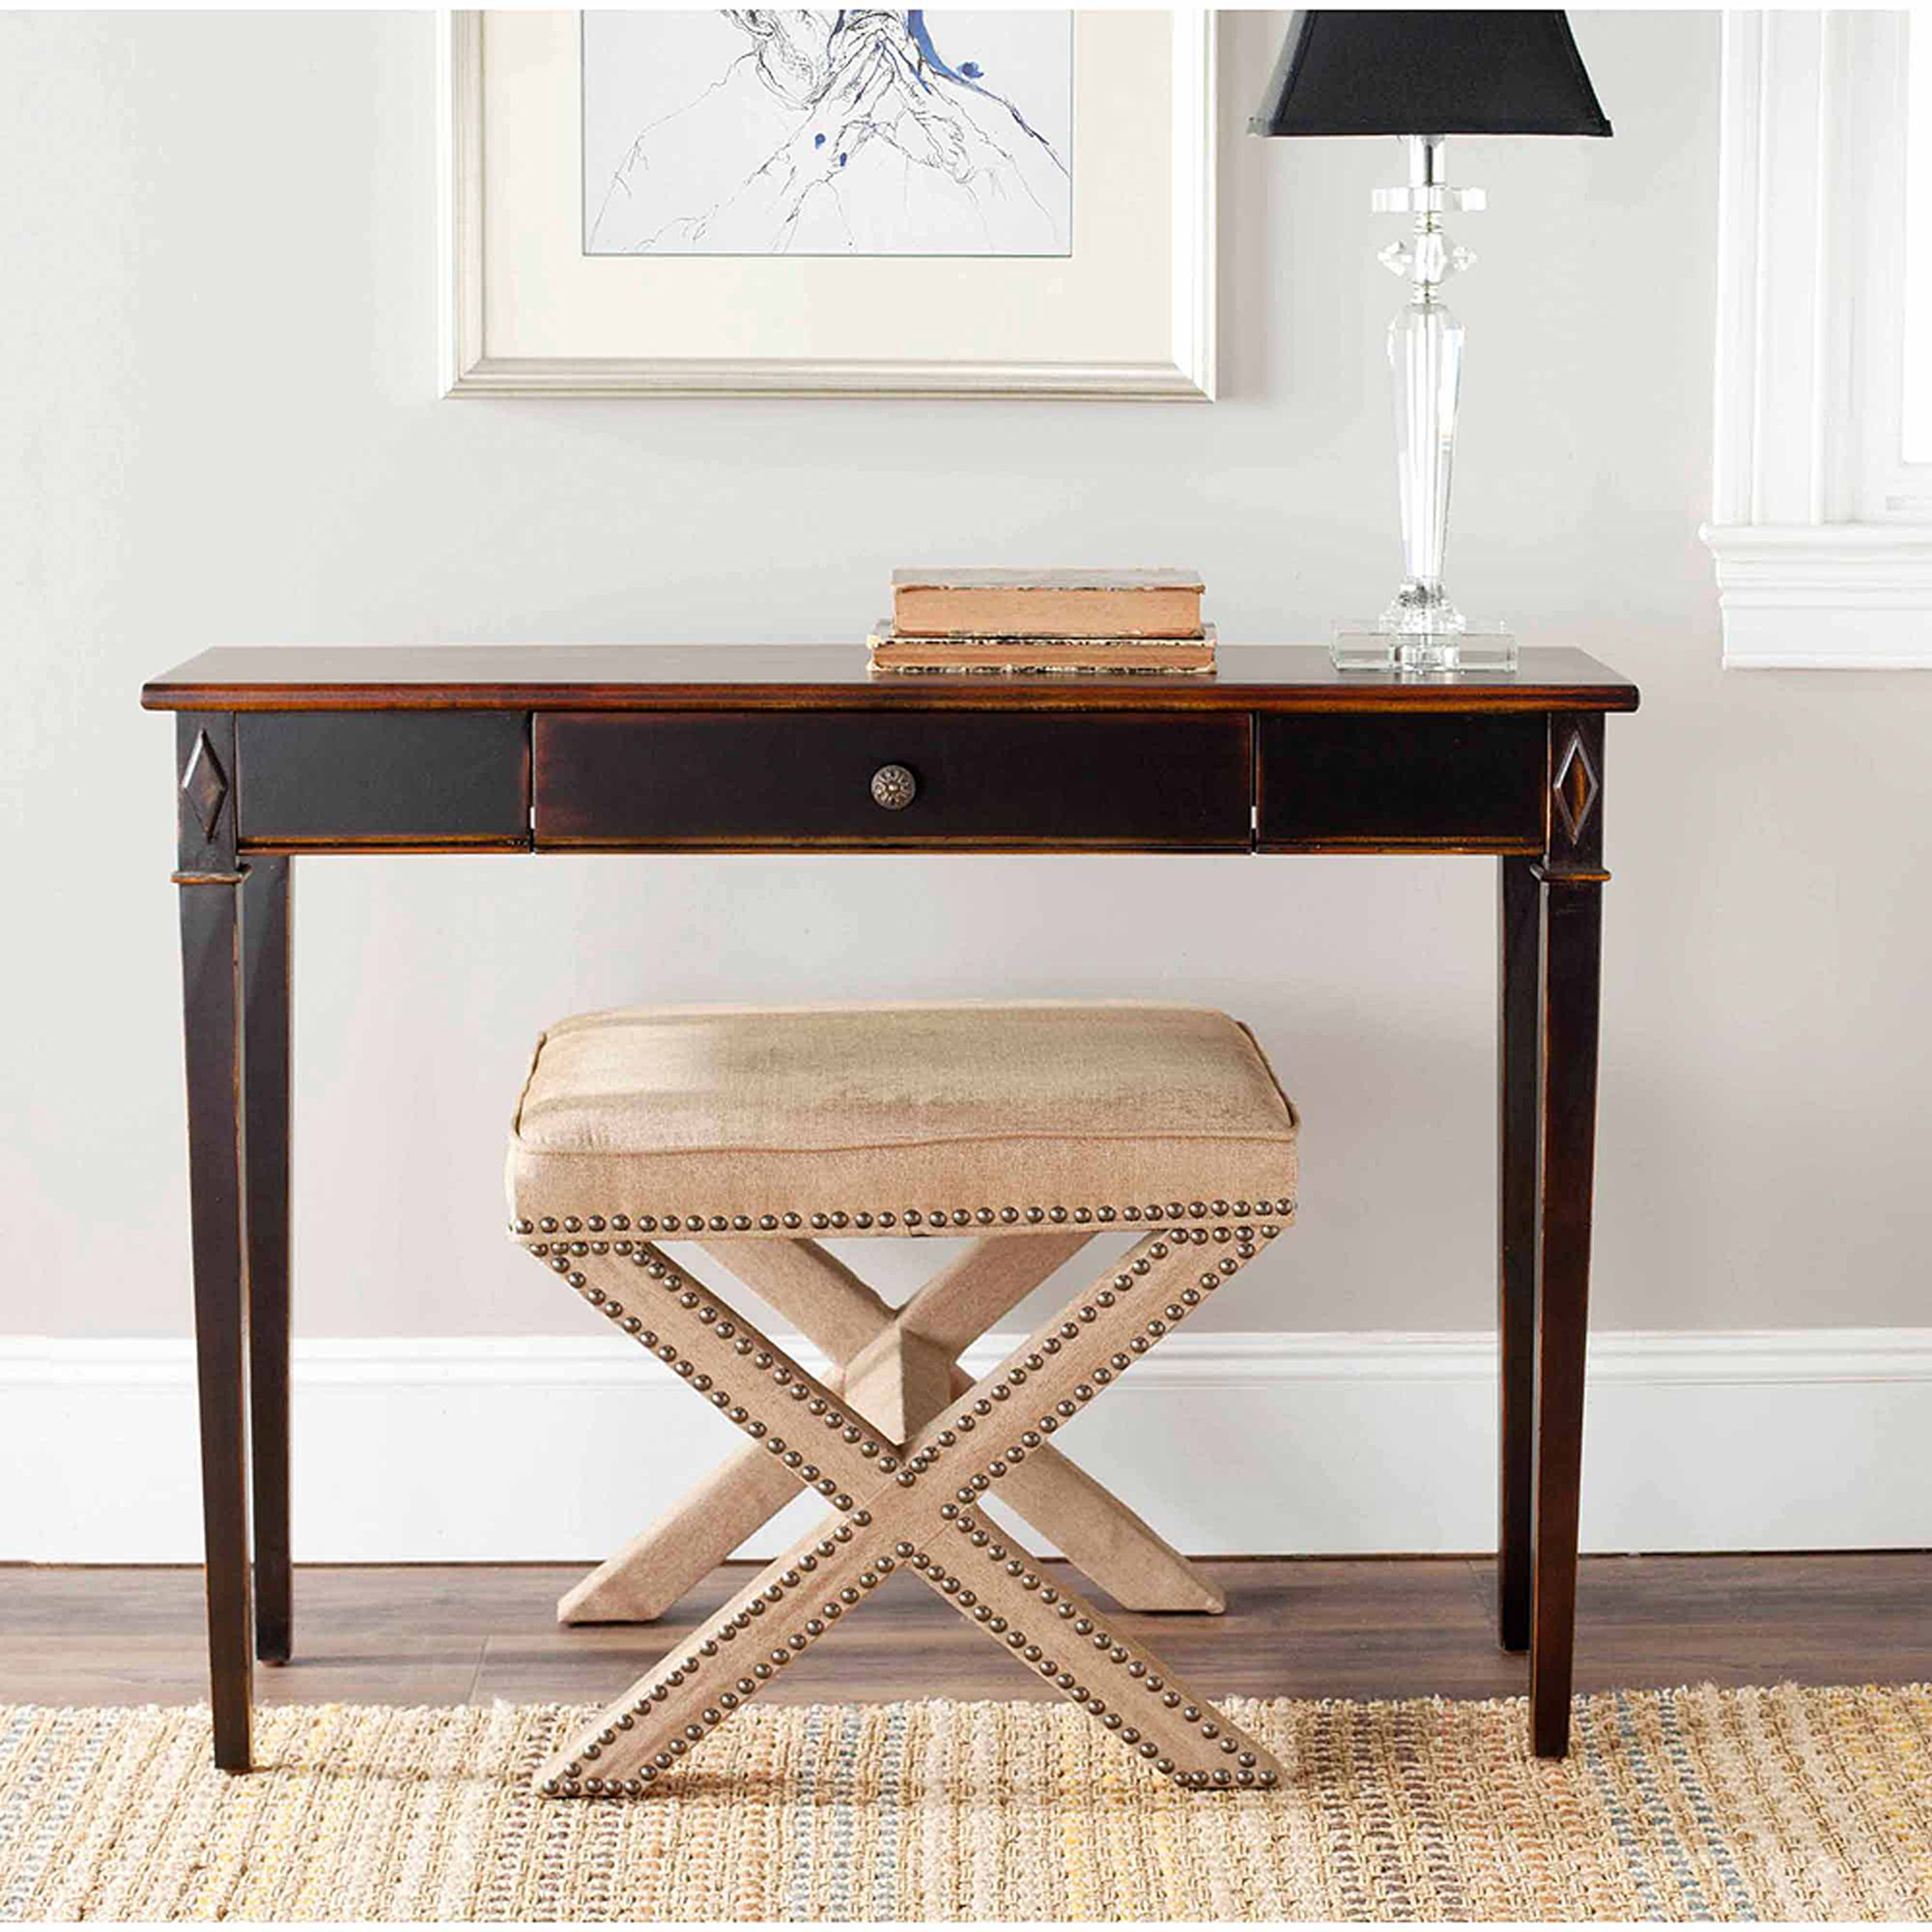 Safavieh Lindy Birch Wood Console Table with Drawer Lightly